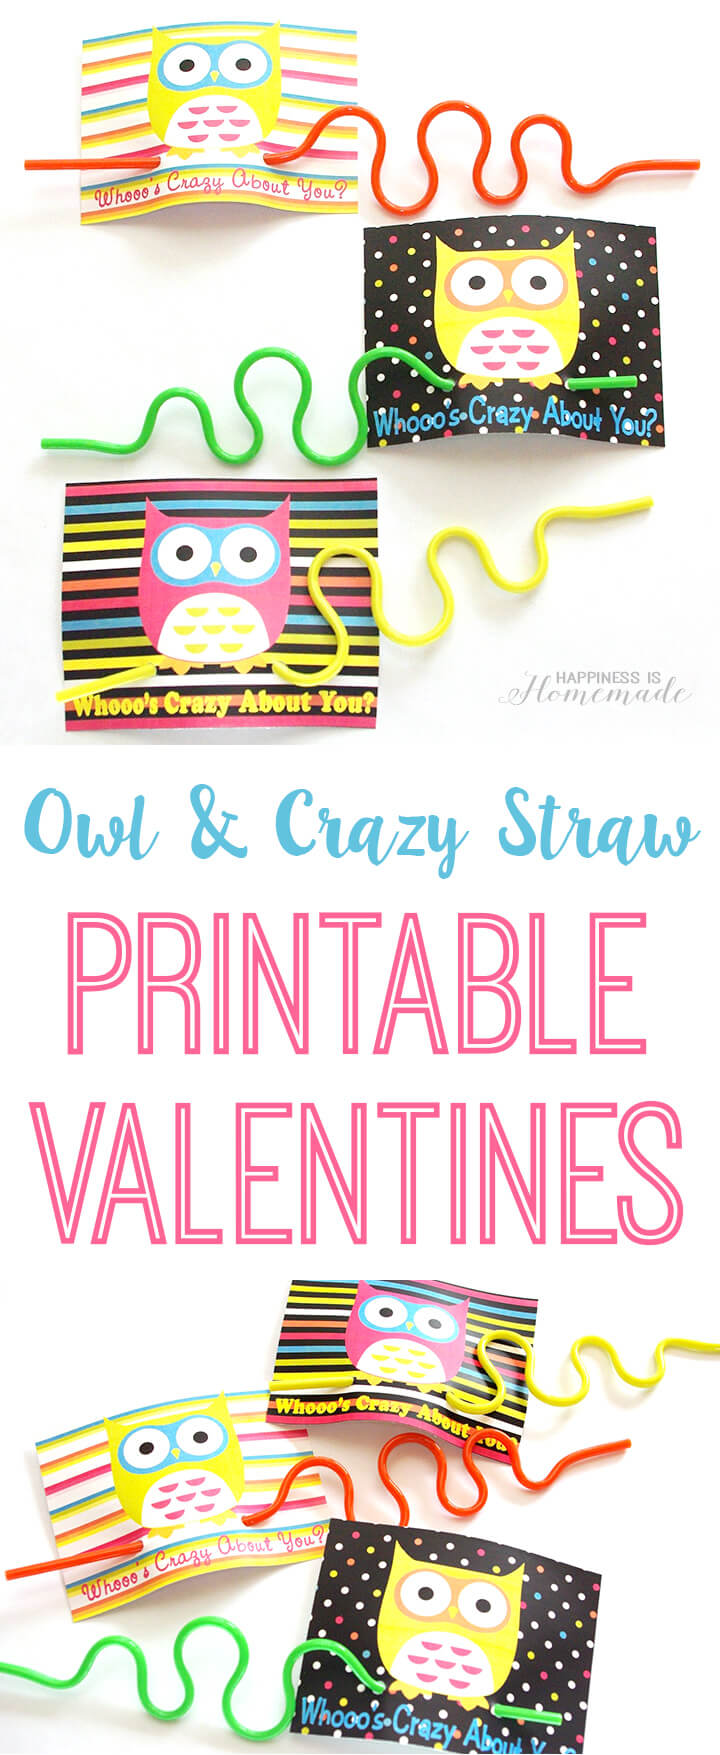 Owl and Crazy Straw Printable Valentine's Day Cards - Whooo's Crazy About You